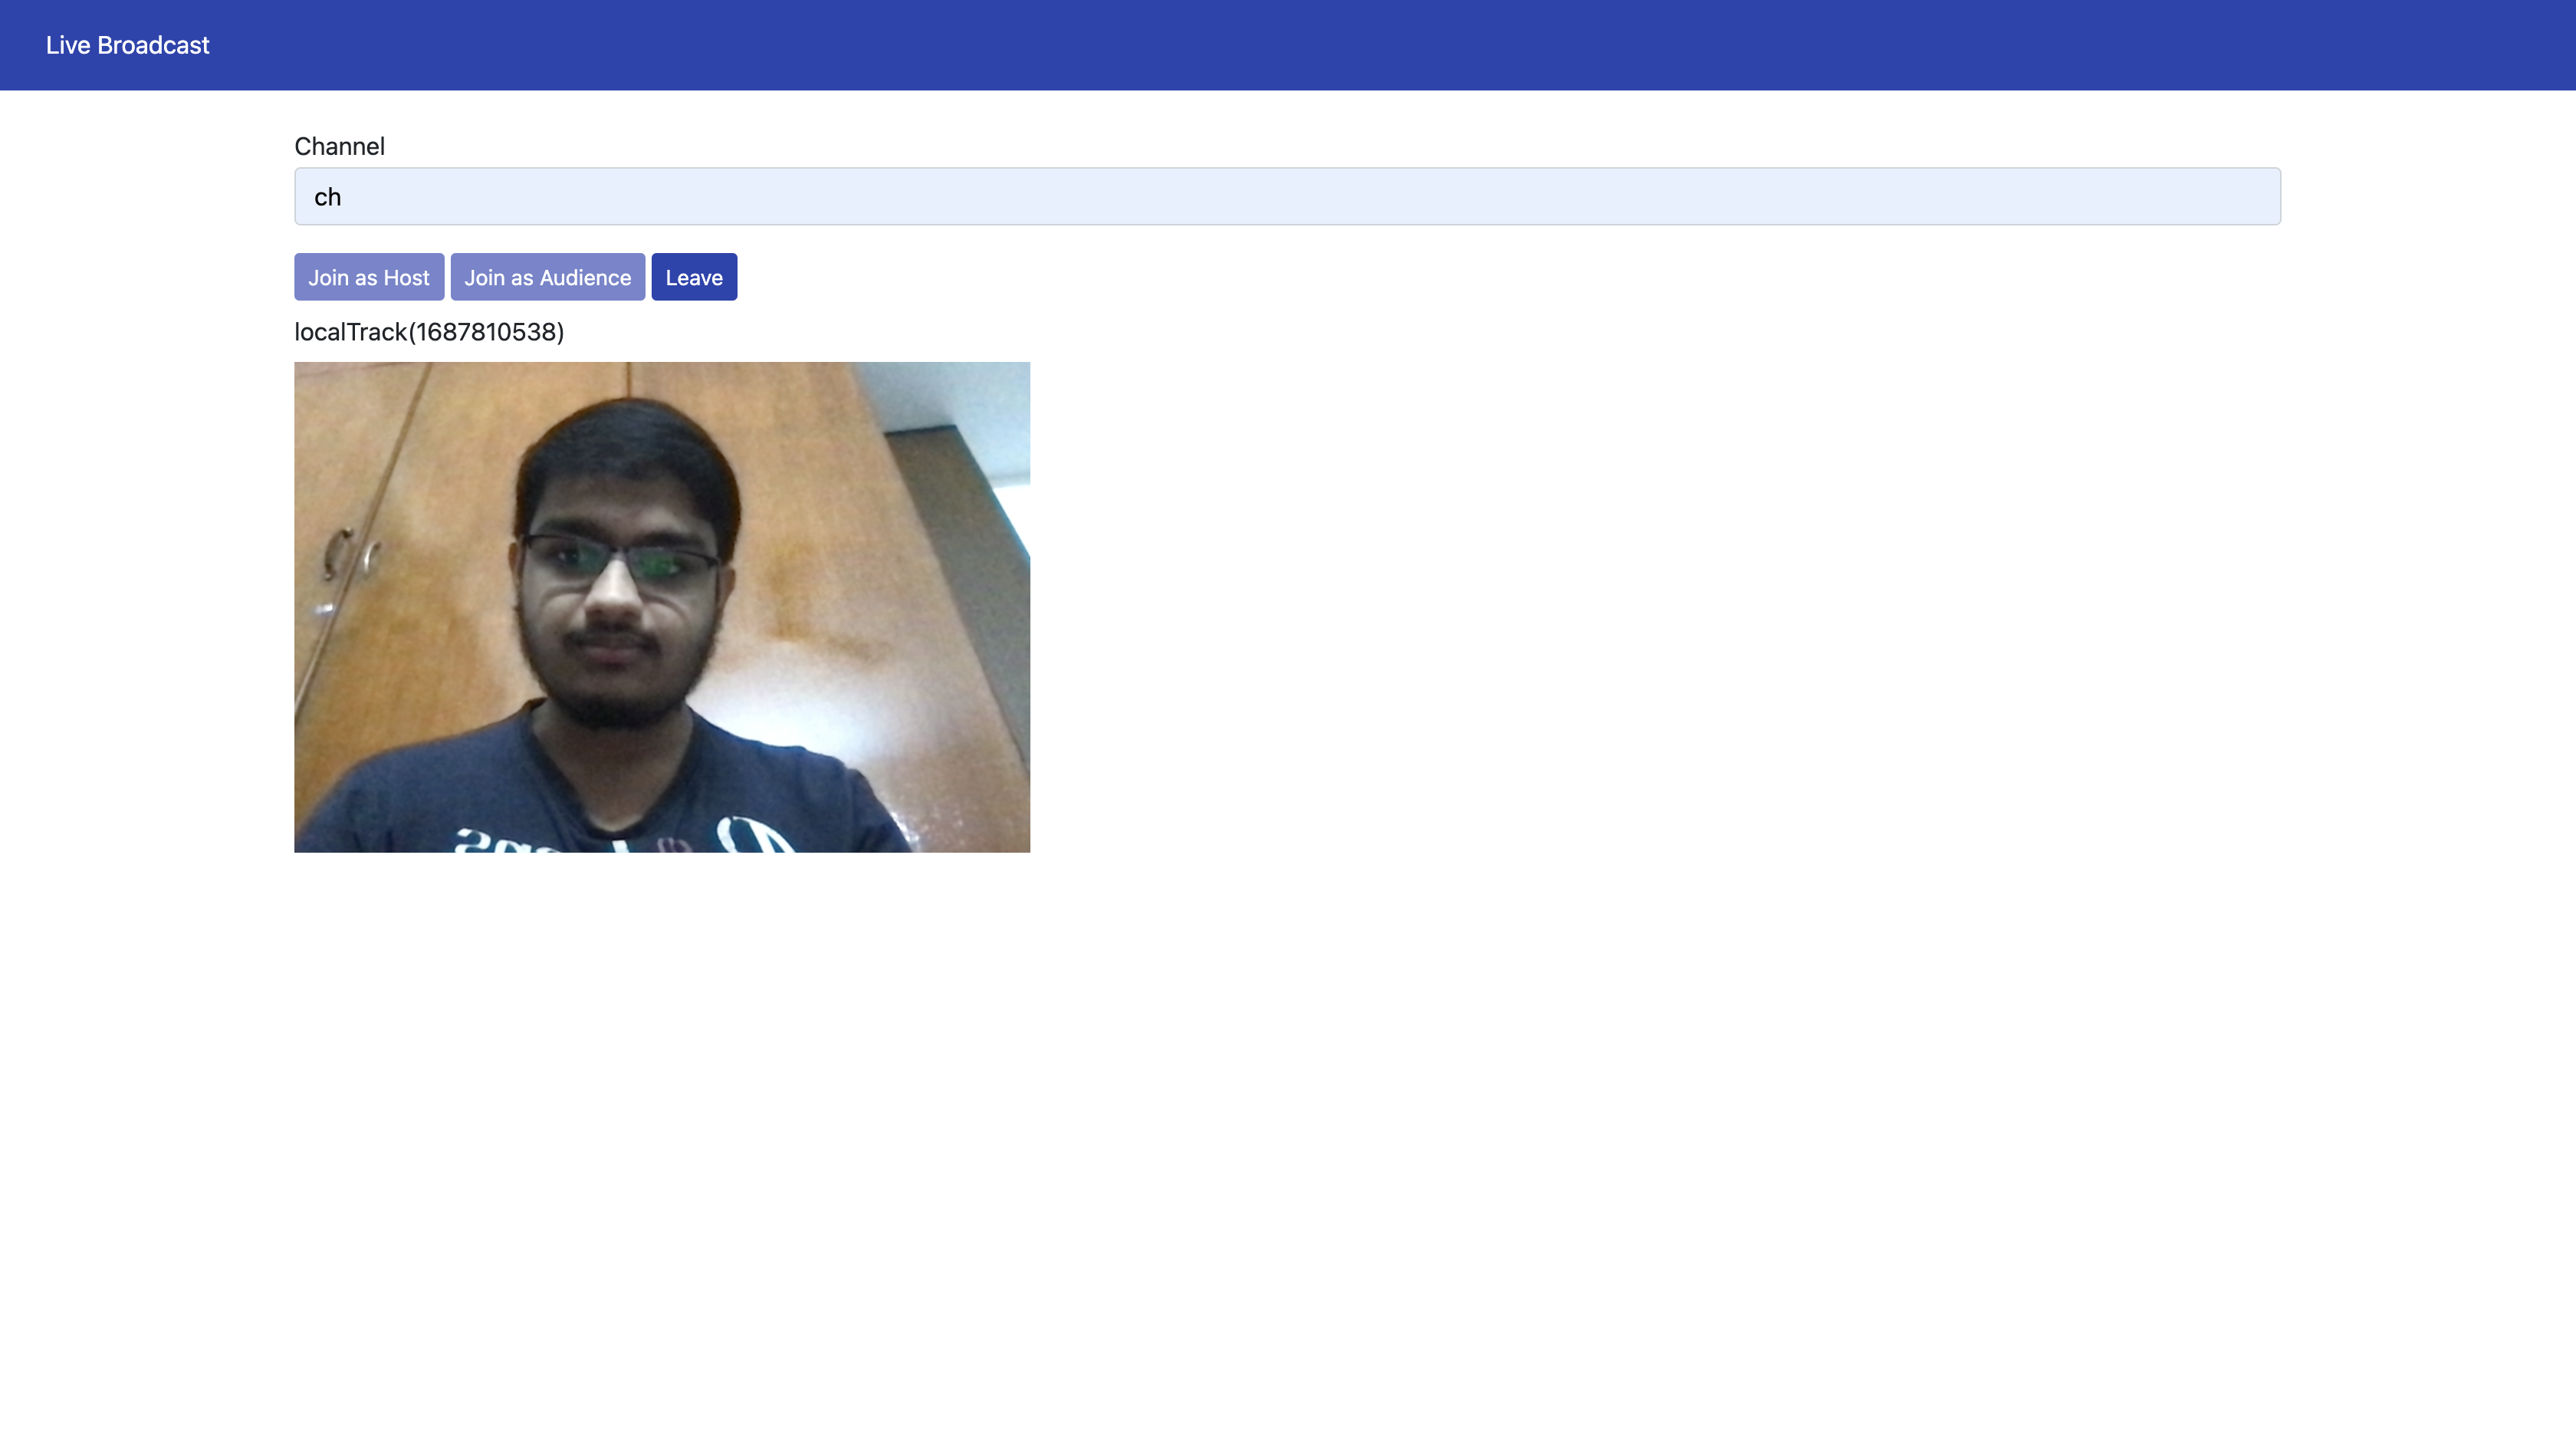 Screenshot of the simple live streaming application we will be developing.